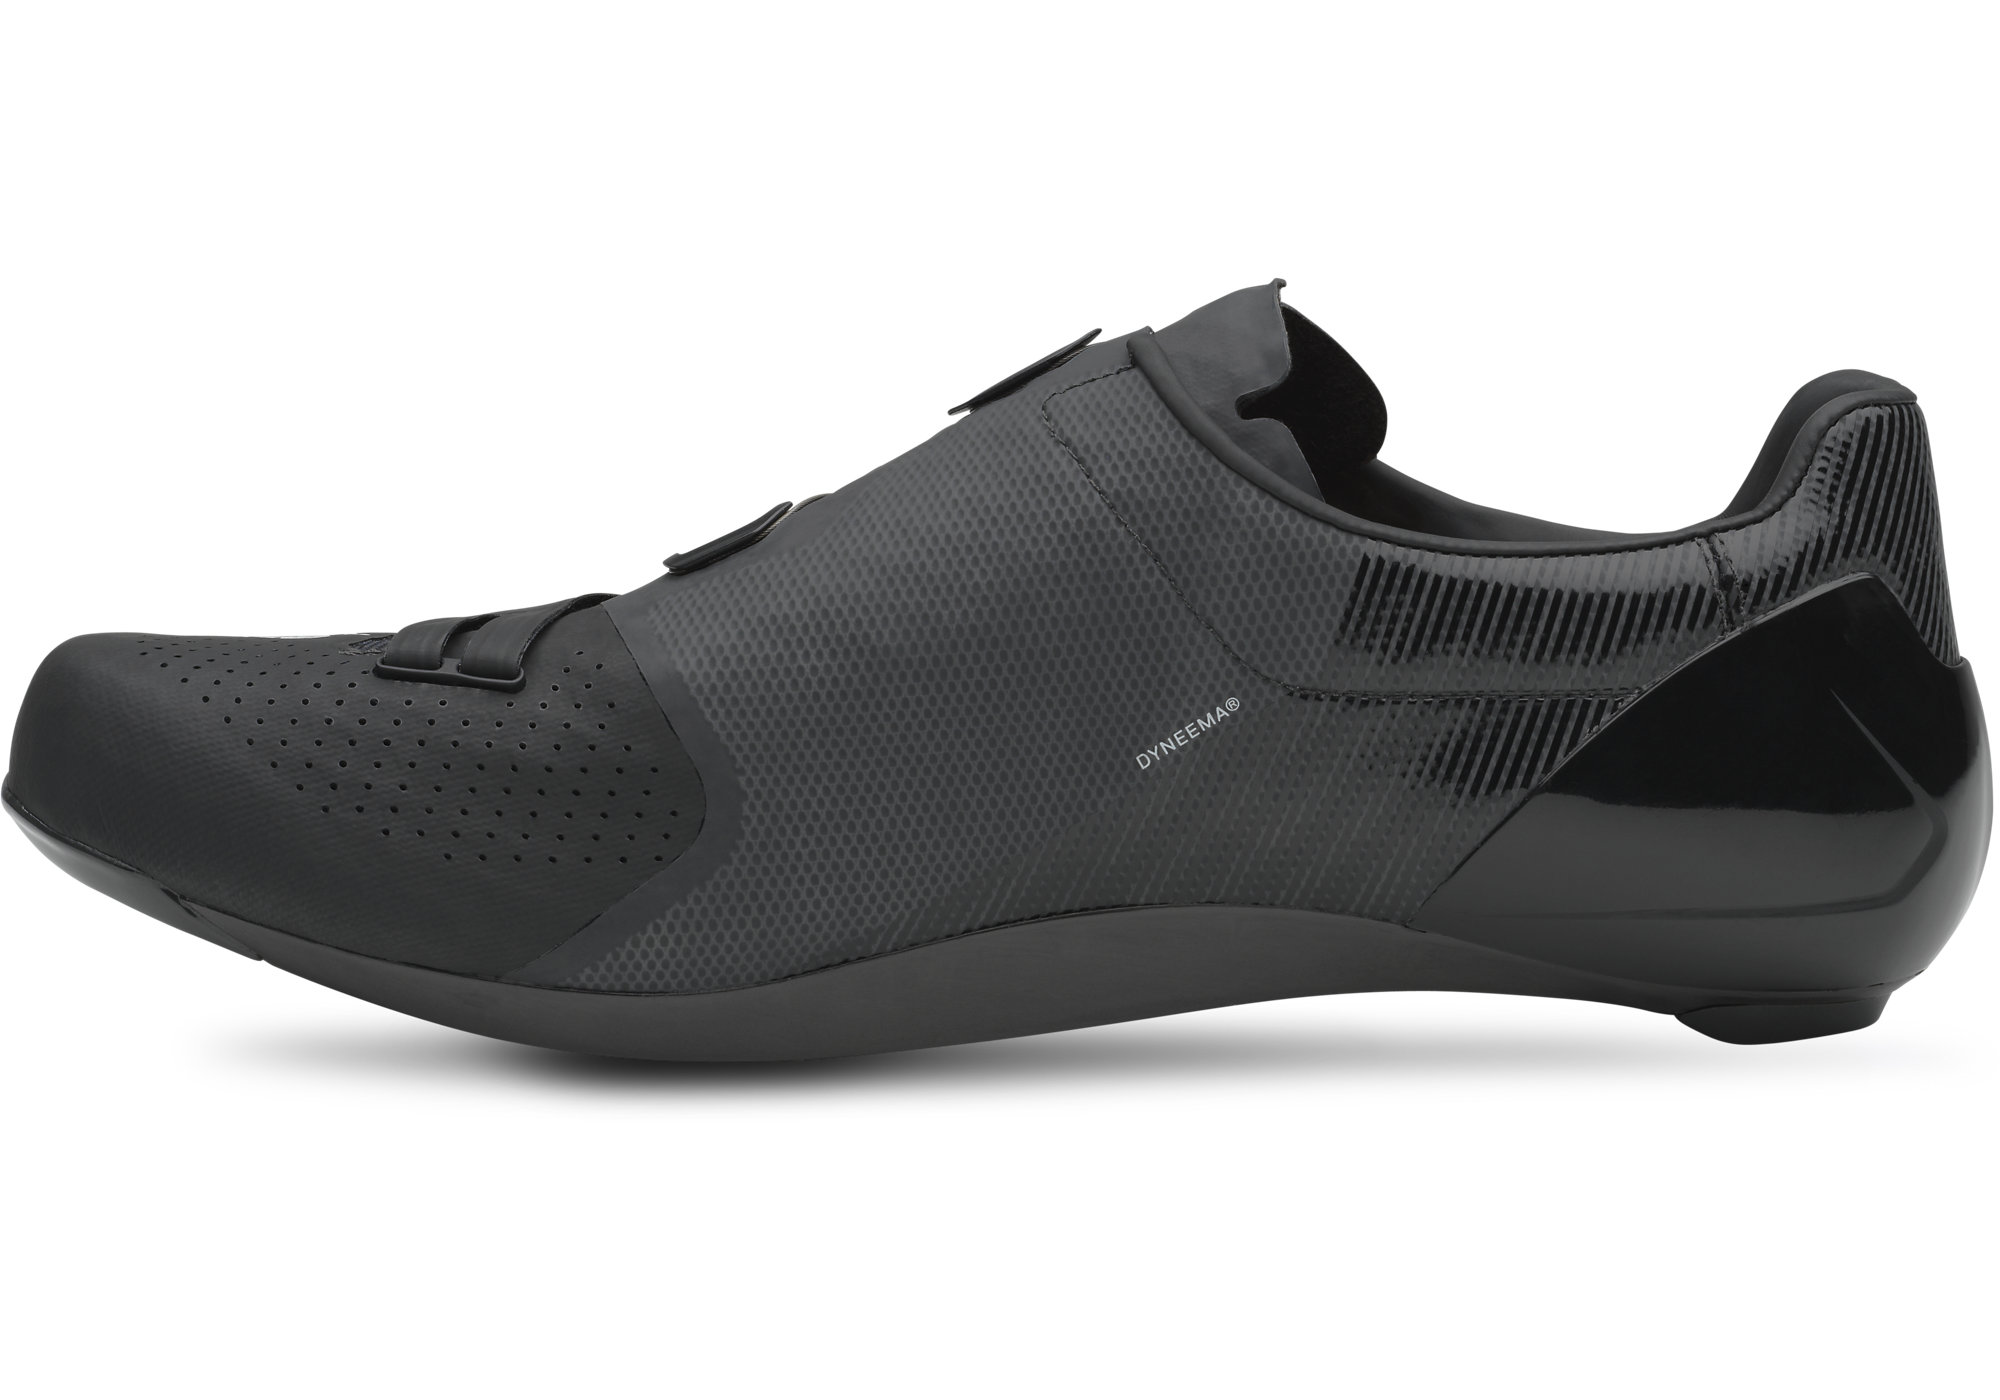 8b4084b4de7 Specialized S-Works 7 Road Shoes - Bike Therapy Morgan Hill, CA 408-708-9818